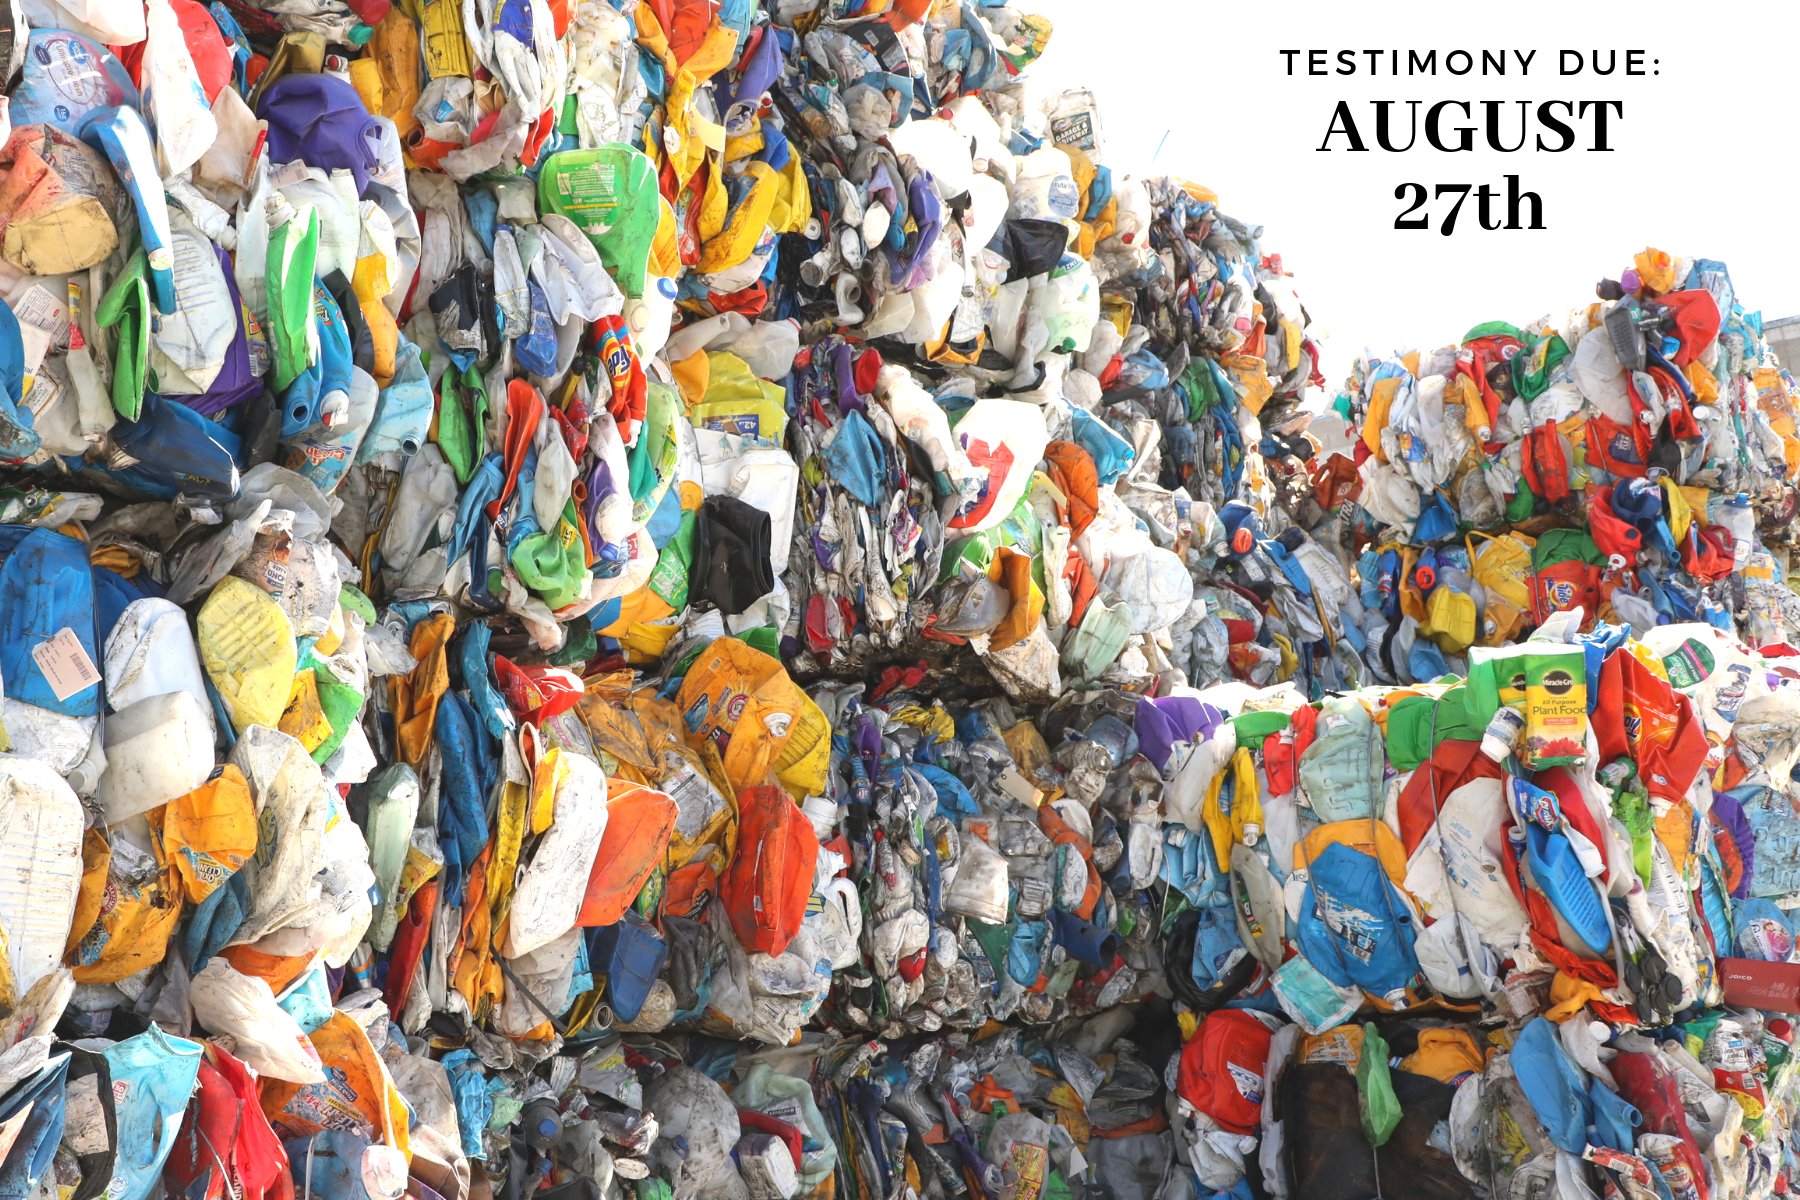 Want to see less waste? Now is the time to speak up. - Every 10 years, each county is required to update their Integrated Solid Waste Management Plan (ISWMP)—Honolulu's update is happening now and it's our time to weigh in! Public testimony is due August 27th!